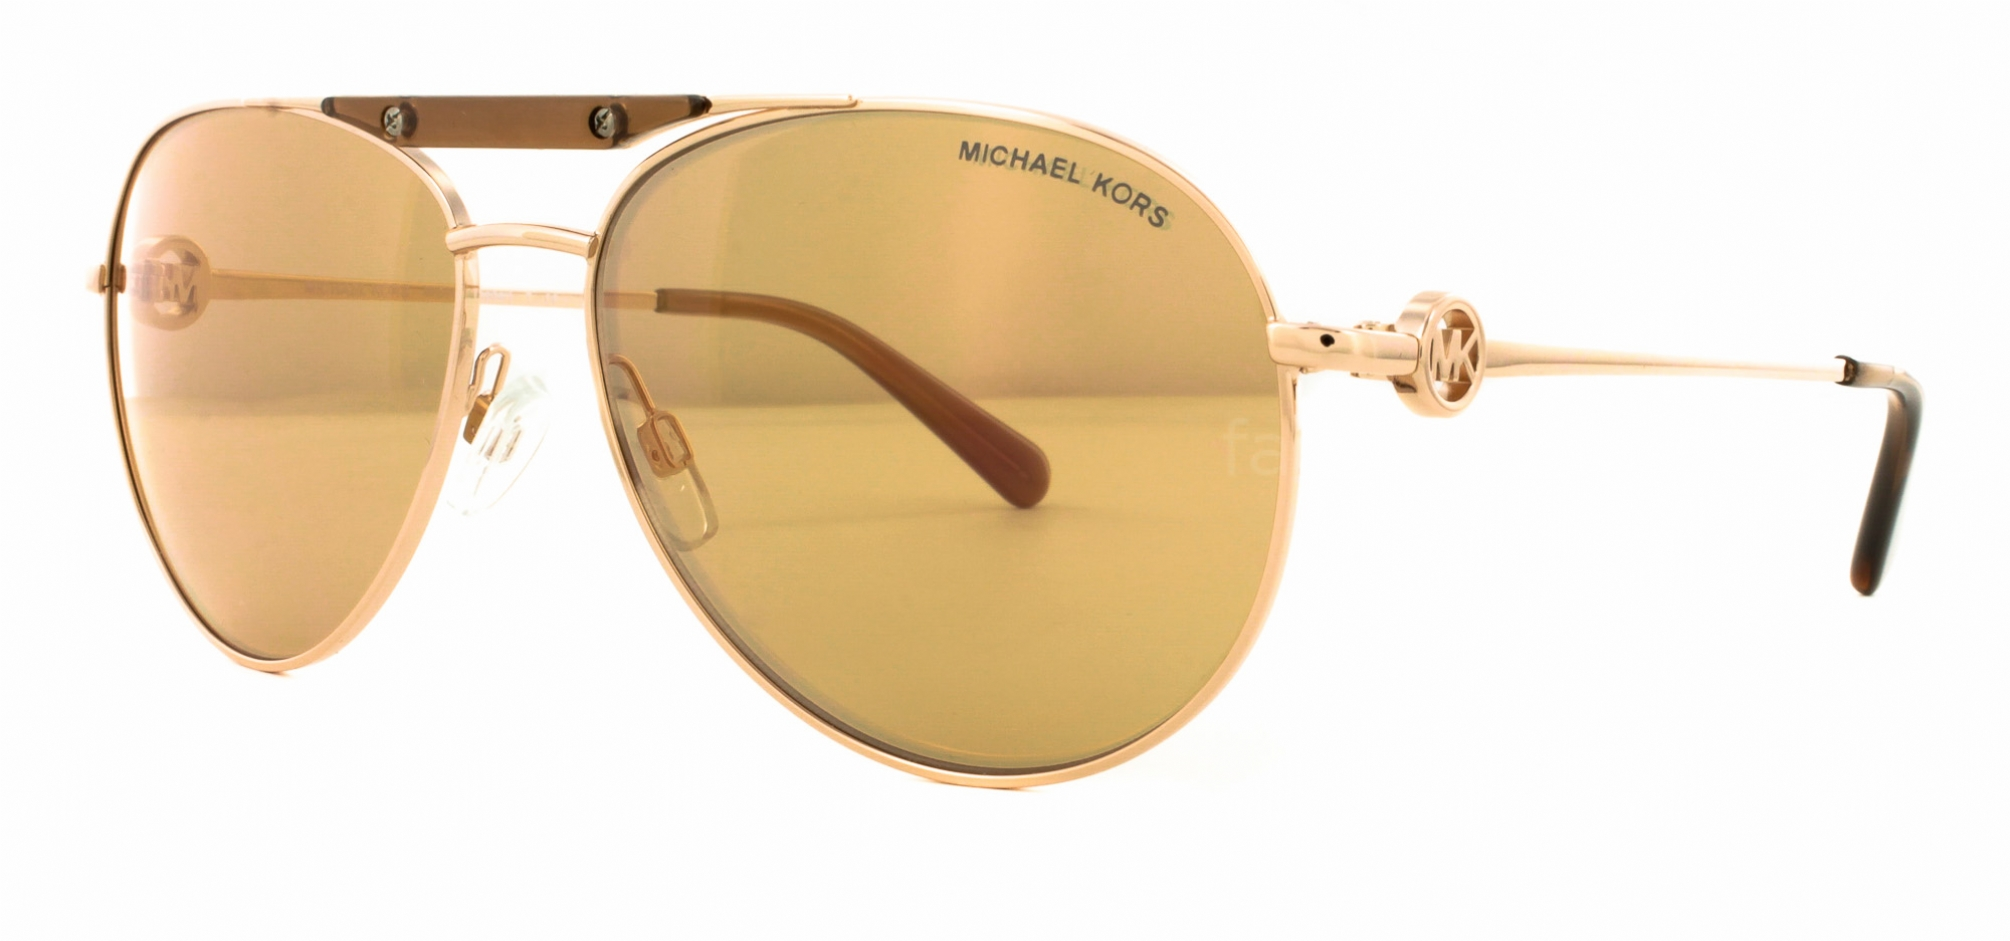 d4bab5c96176 Buy Michael Kors Sunglasses directly from OpticsFast.com